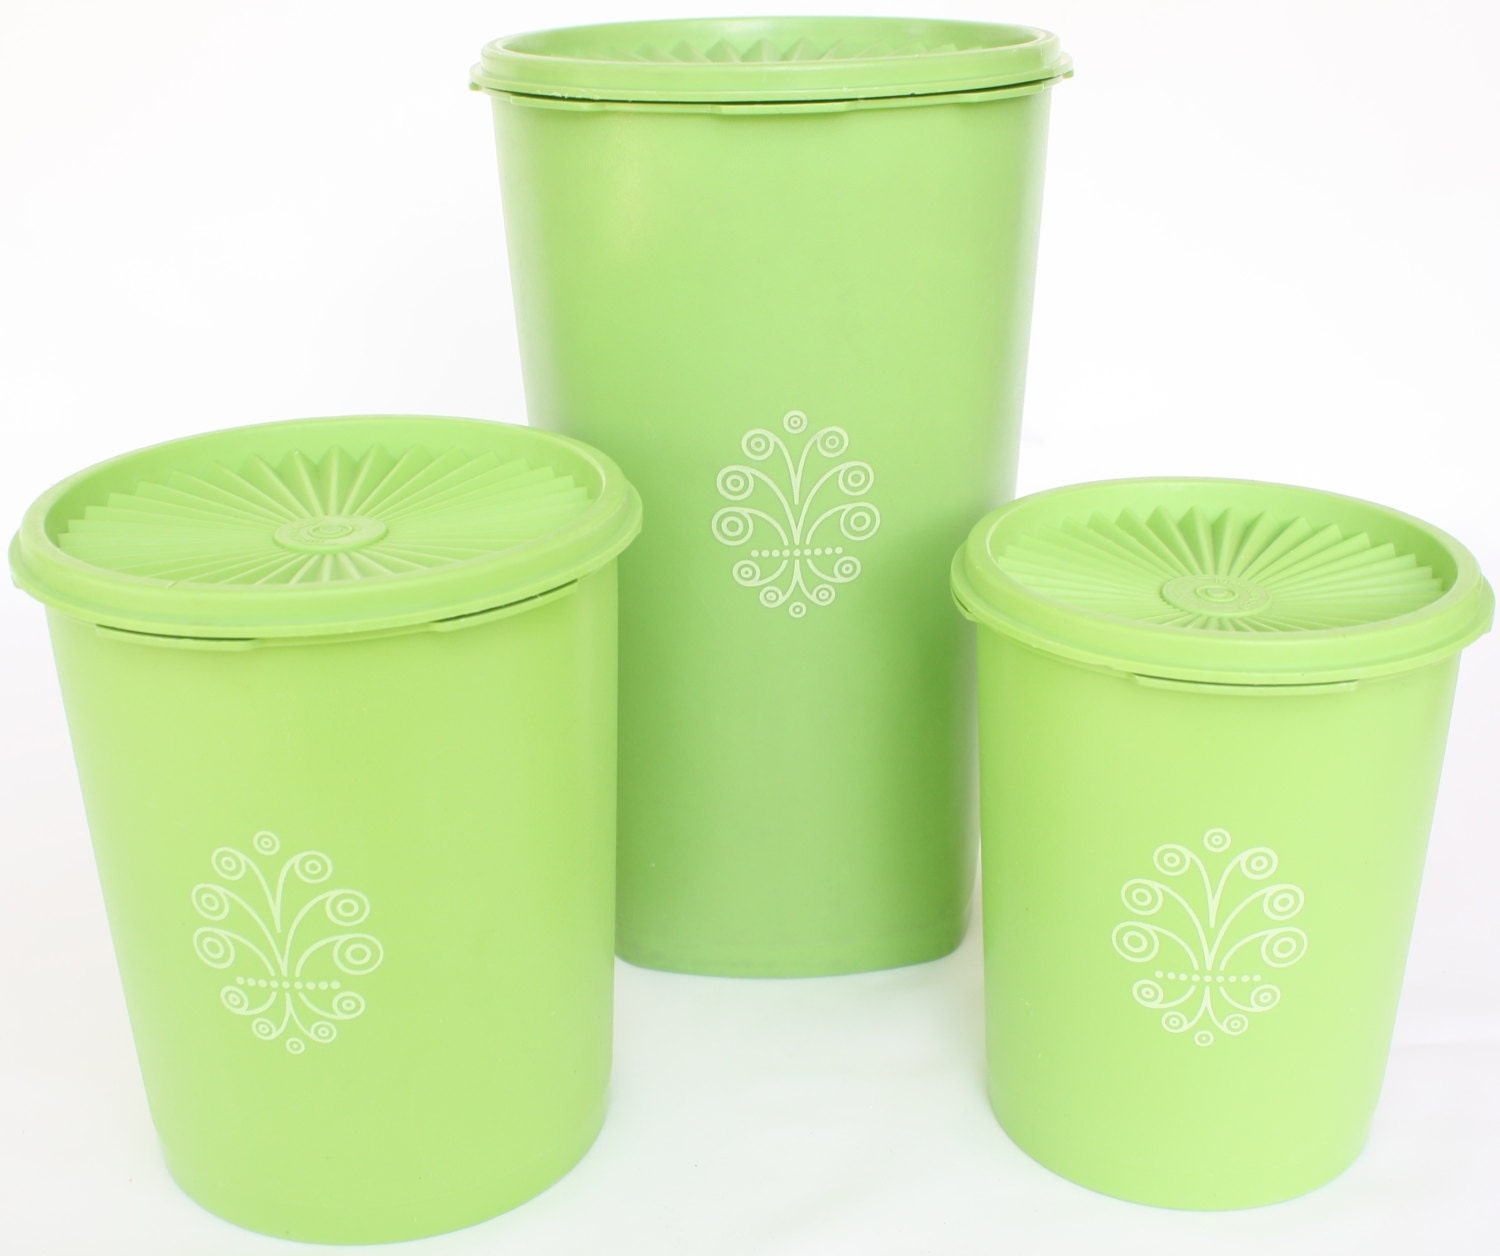 Green Kitchen Canisters: Vintage Tupperware Kitchen Canister Set Containers Apple Green